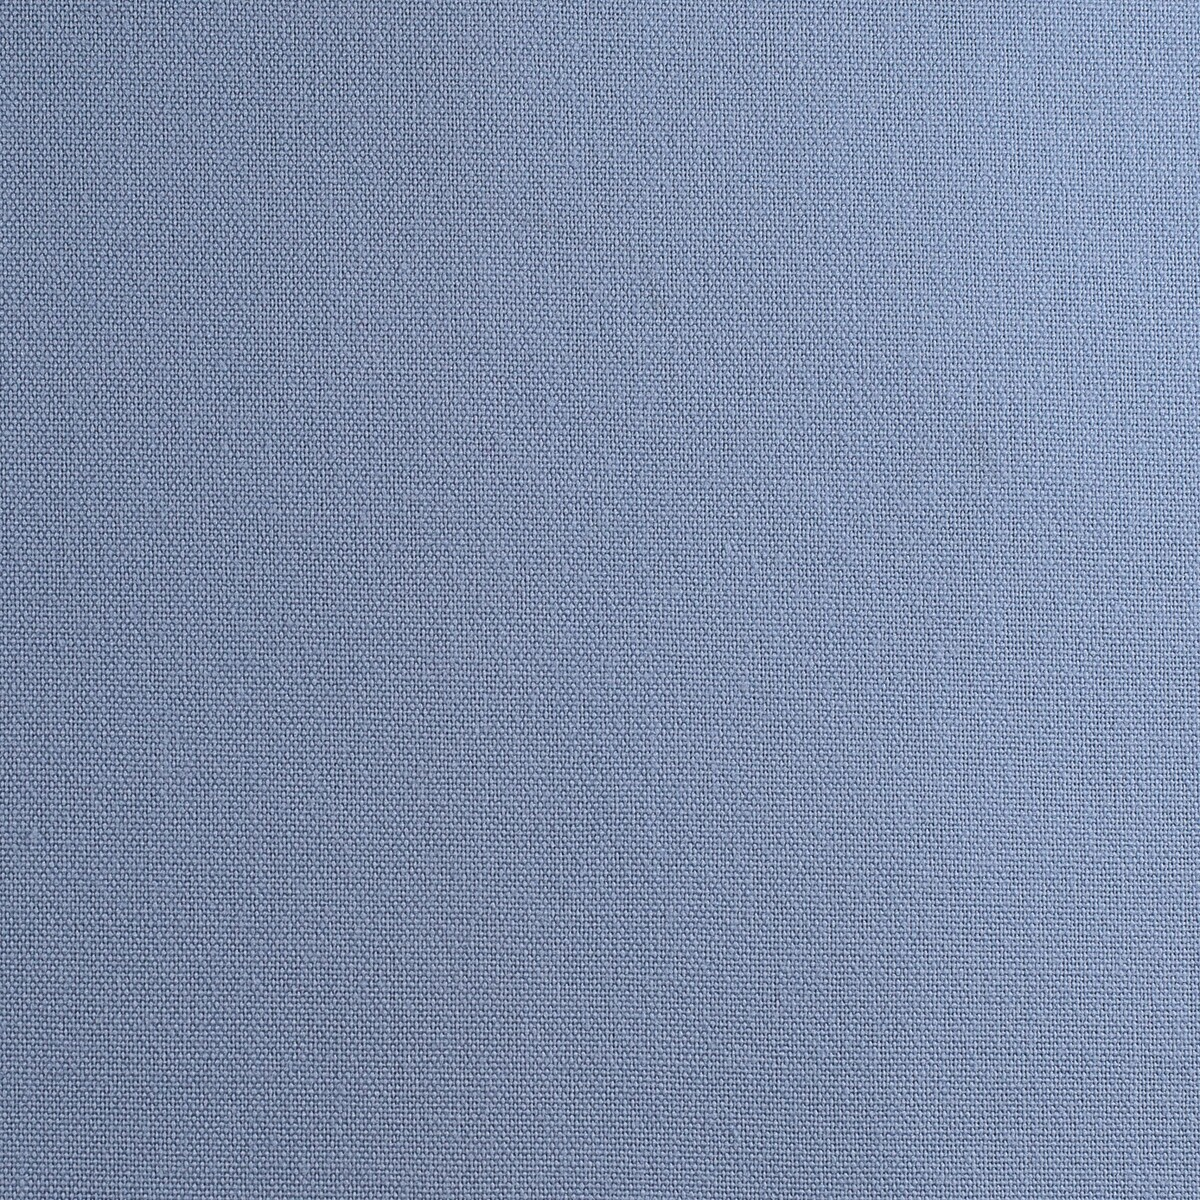 Sky Blue Hemstitch